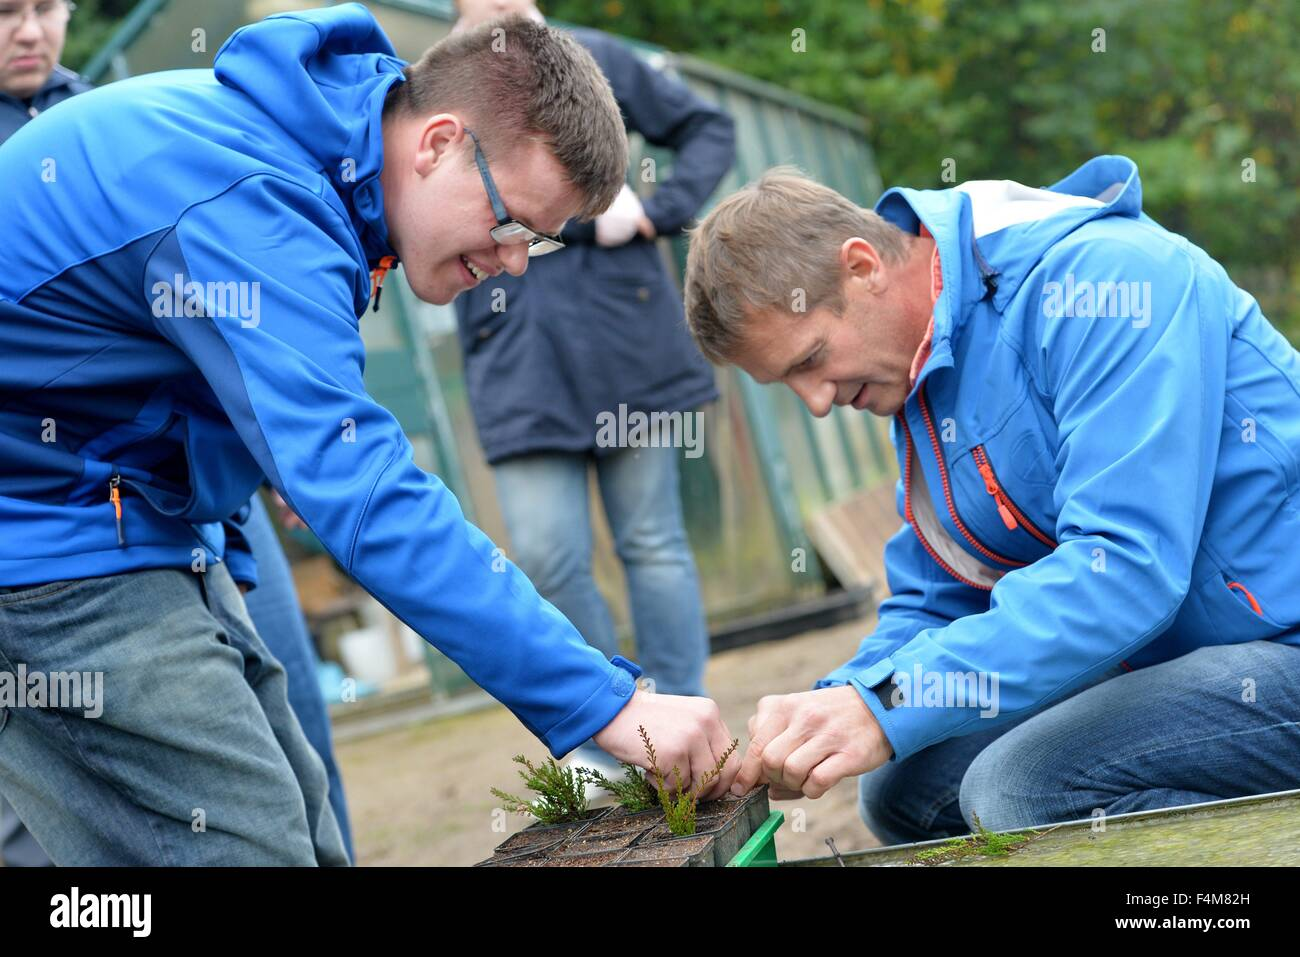 Handicapped  man Christoph Schmidt (left) works together with a non handicapped man in a garden, Germany, city of Stock Photo